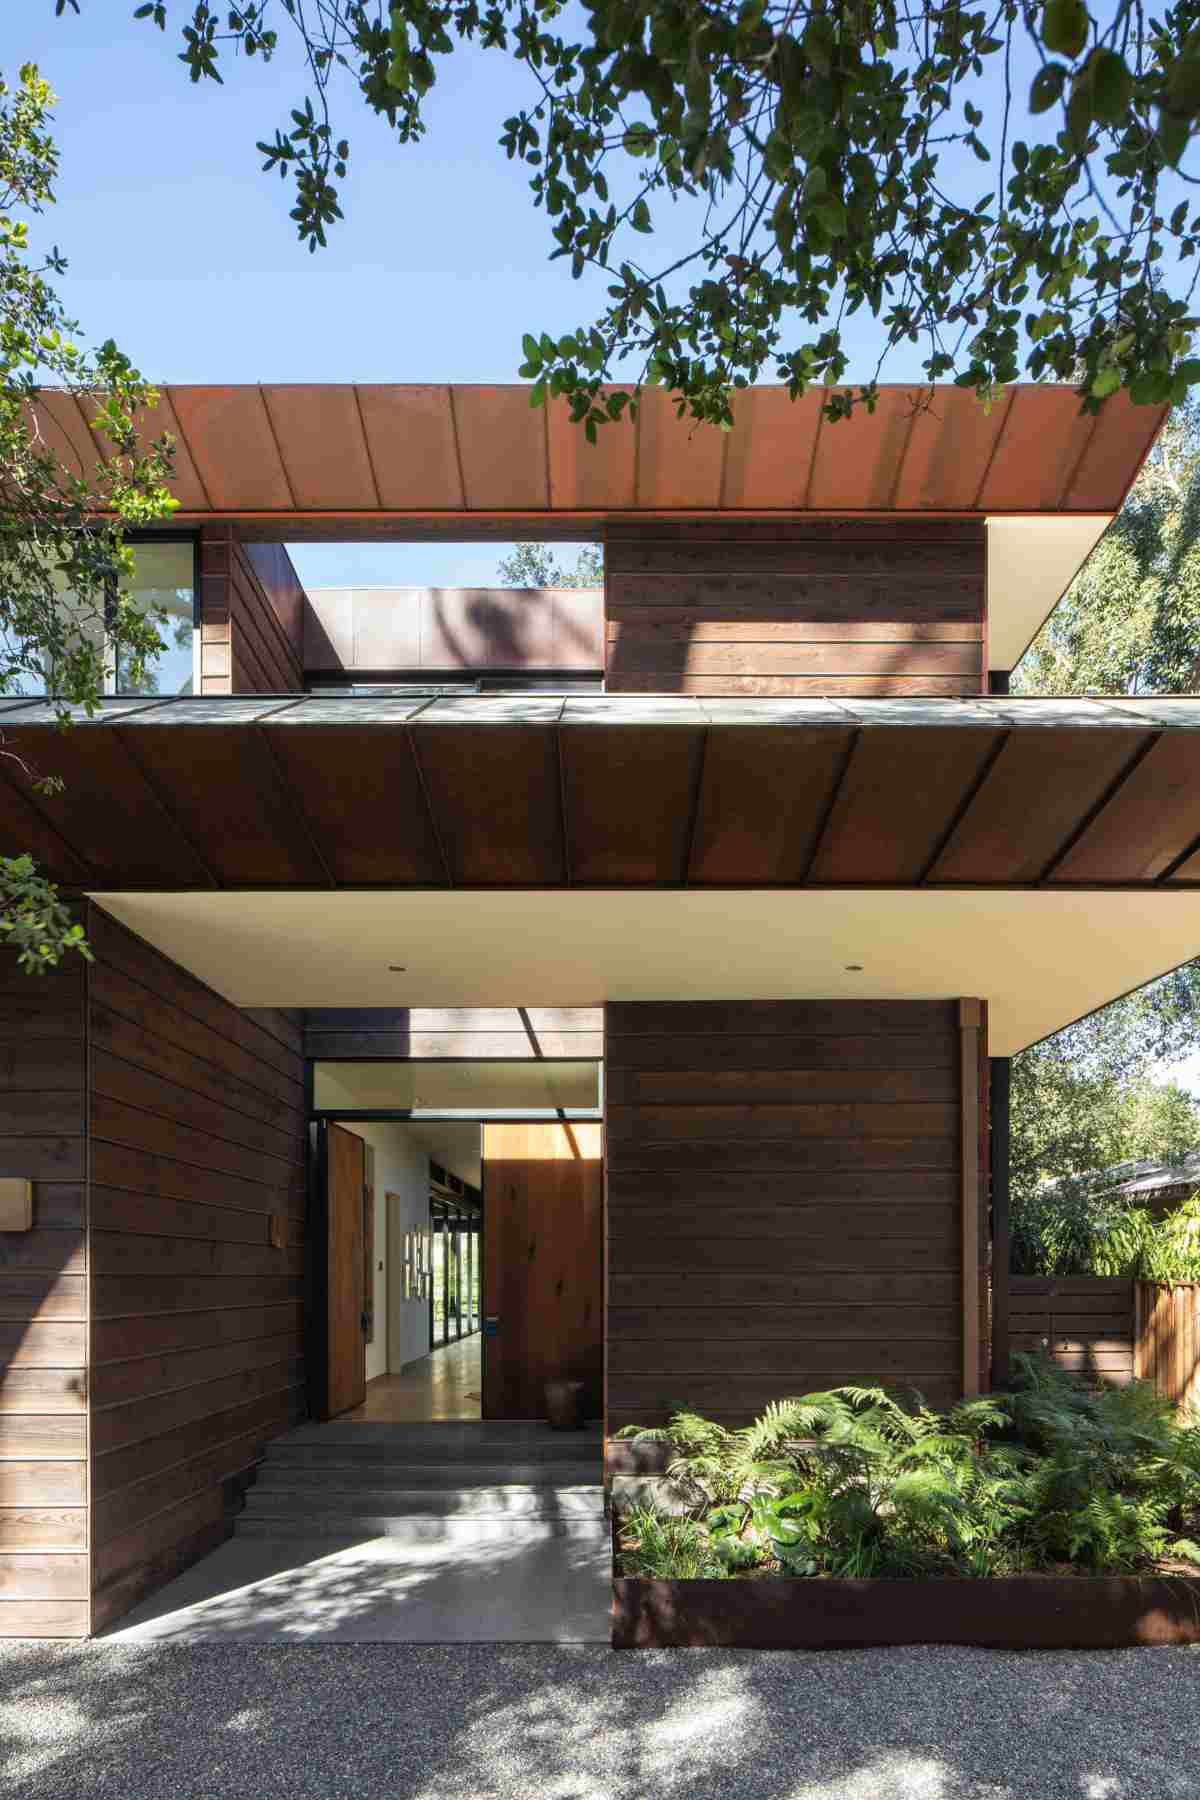 The materials used for the exterior of the house have a very organic and natural feel and that helps with the indoor-outdoor integration